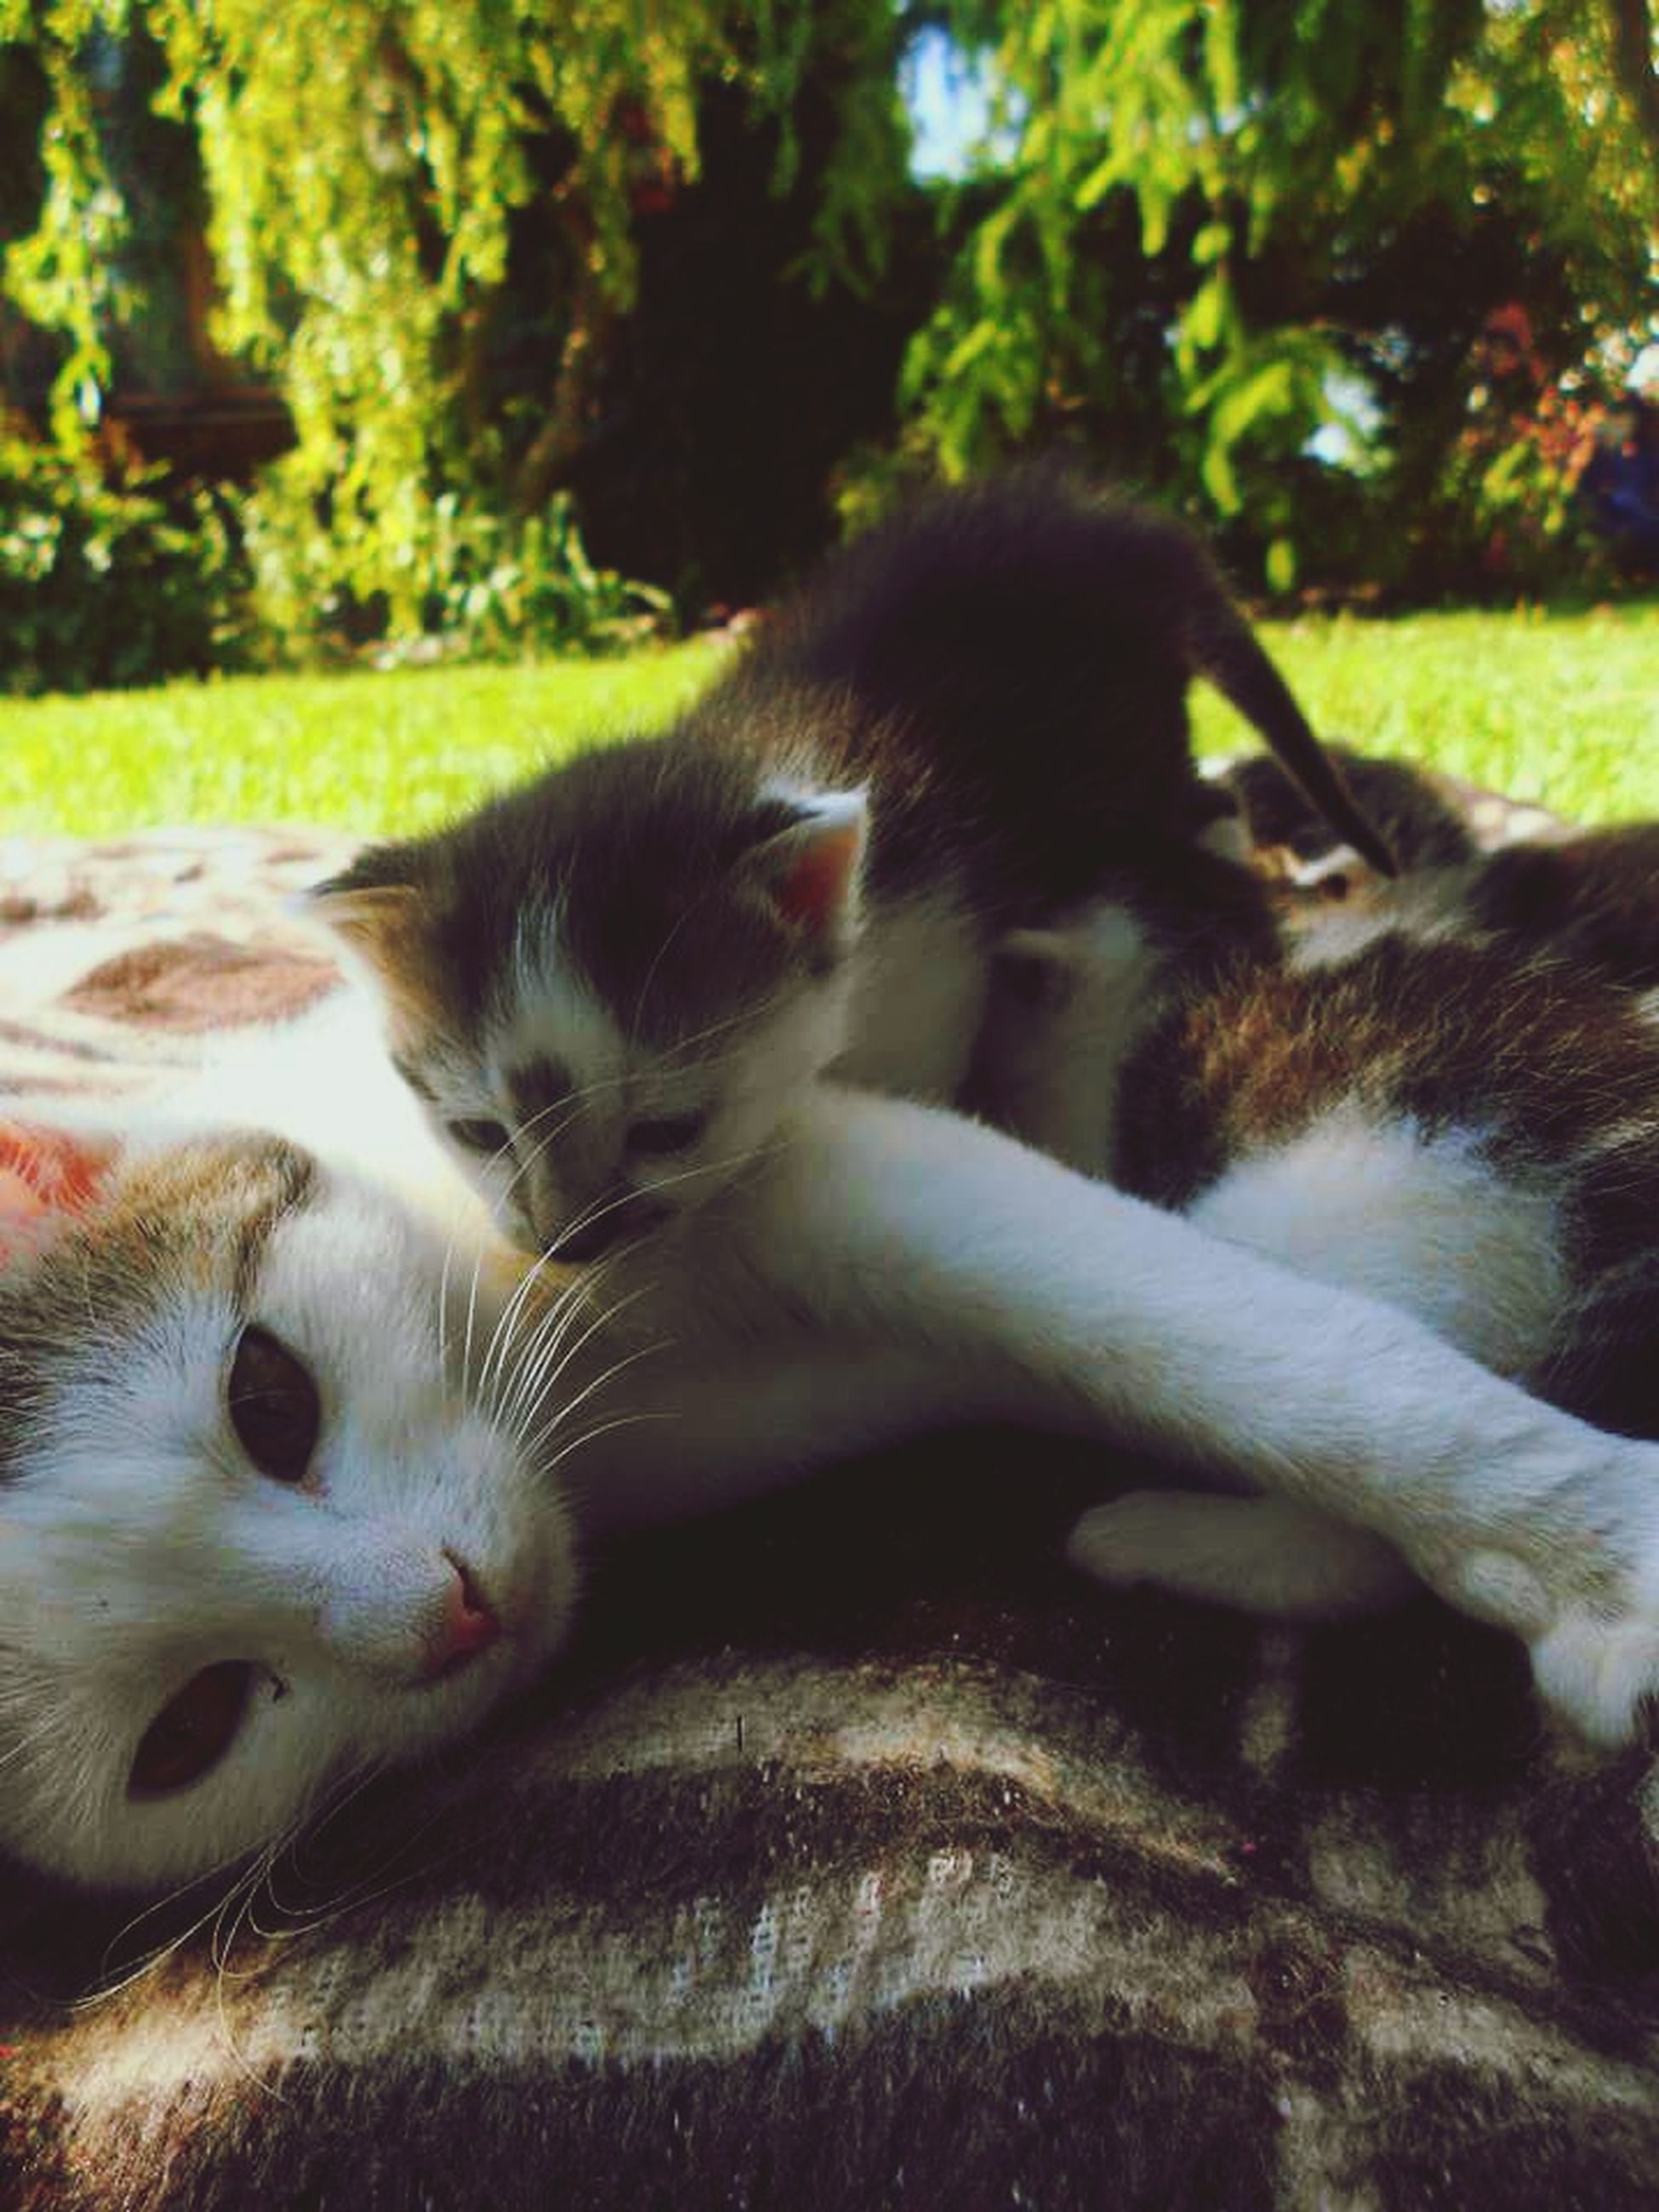 animal themes, mammal, domestic animals, one animal, pets, relaxation, resting, close-up, domestic cat, two animals, lying down, focus on foreground, tree, cat, day, no people, field, nature, dog, sunlight